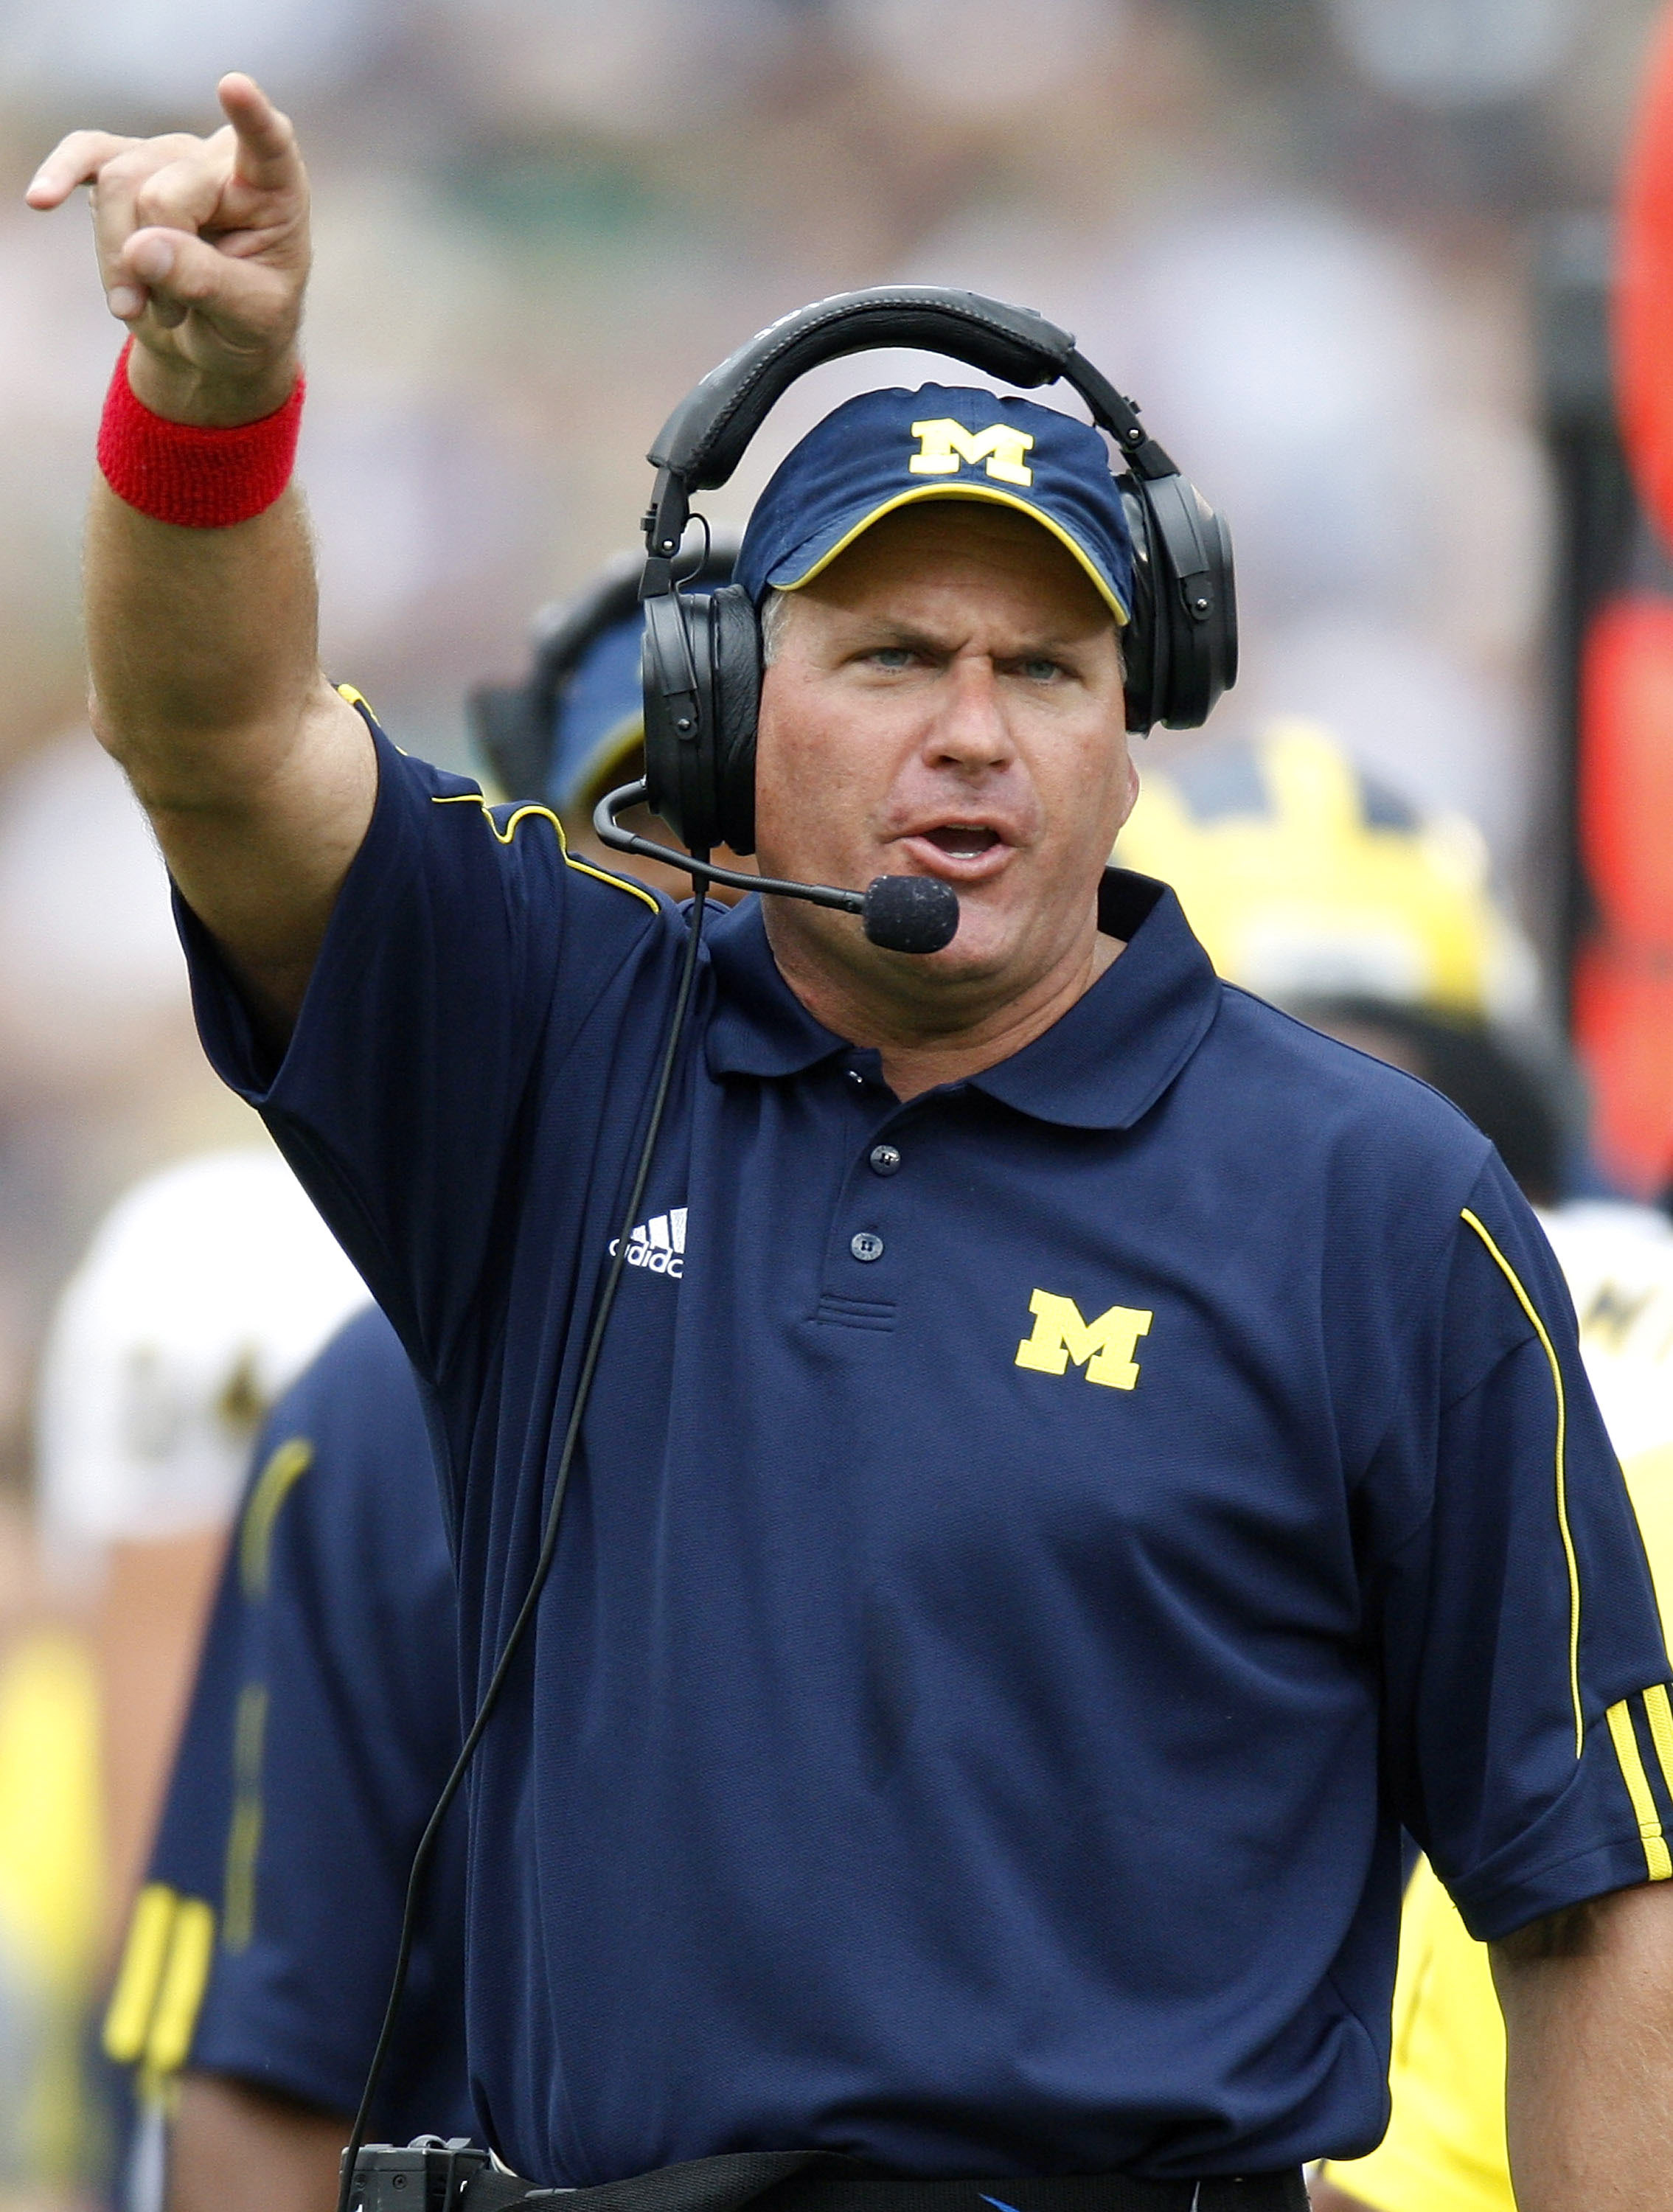 SOUTH BEND, IN - SEPTEMBER 13: Head coach Rich Rodriguez of the Michigan Wolverines yells from the sideline in the first quarter while playing the Notre Dame Fighting Irishon September 13, 2008 at Notre Dame Stadium in South Bend, Indiana. Notre Dame won